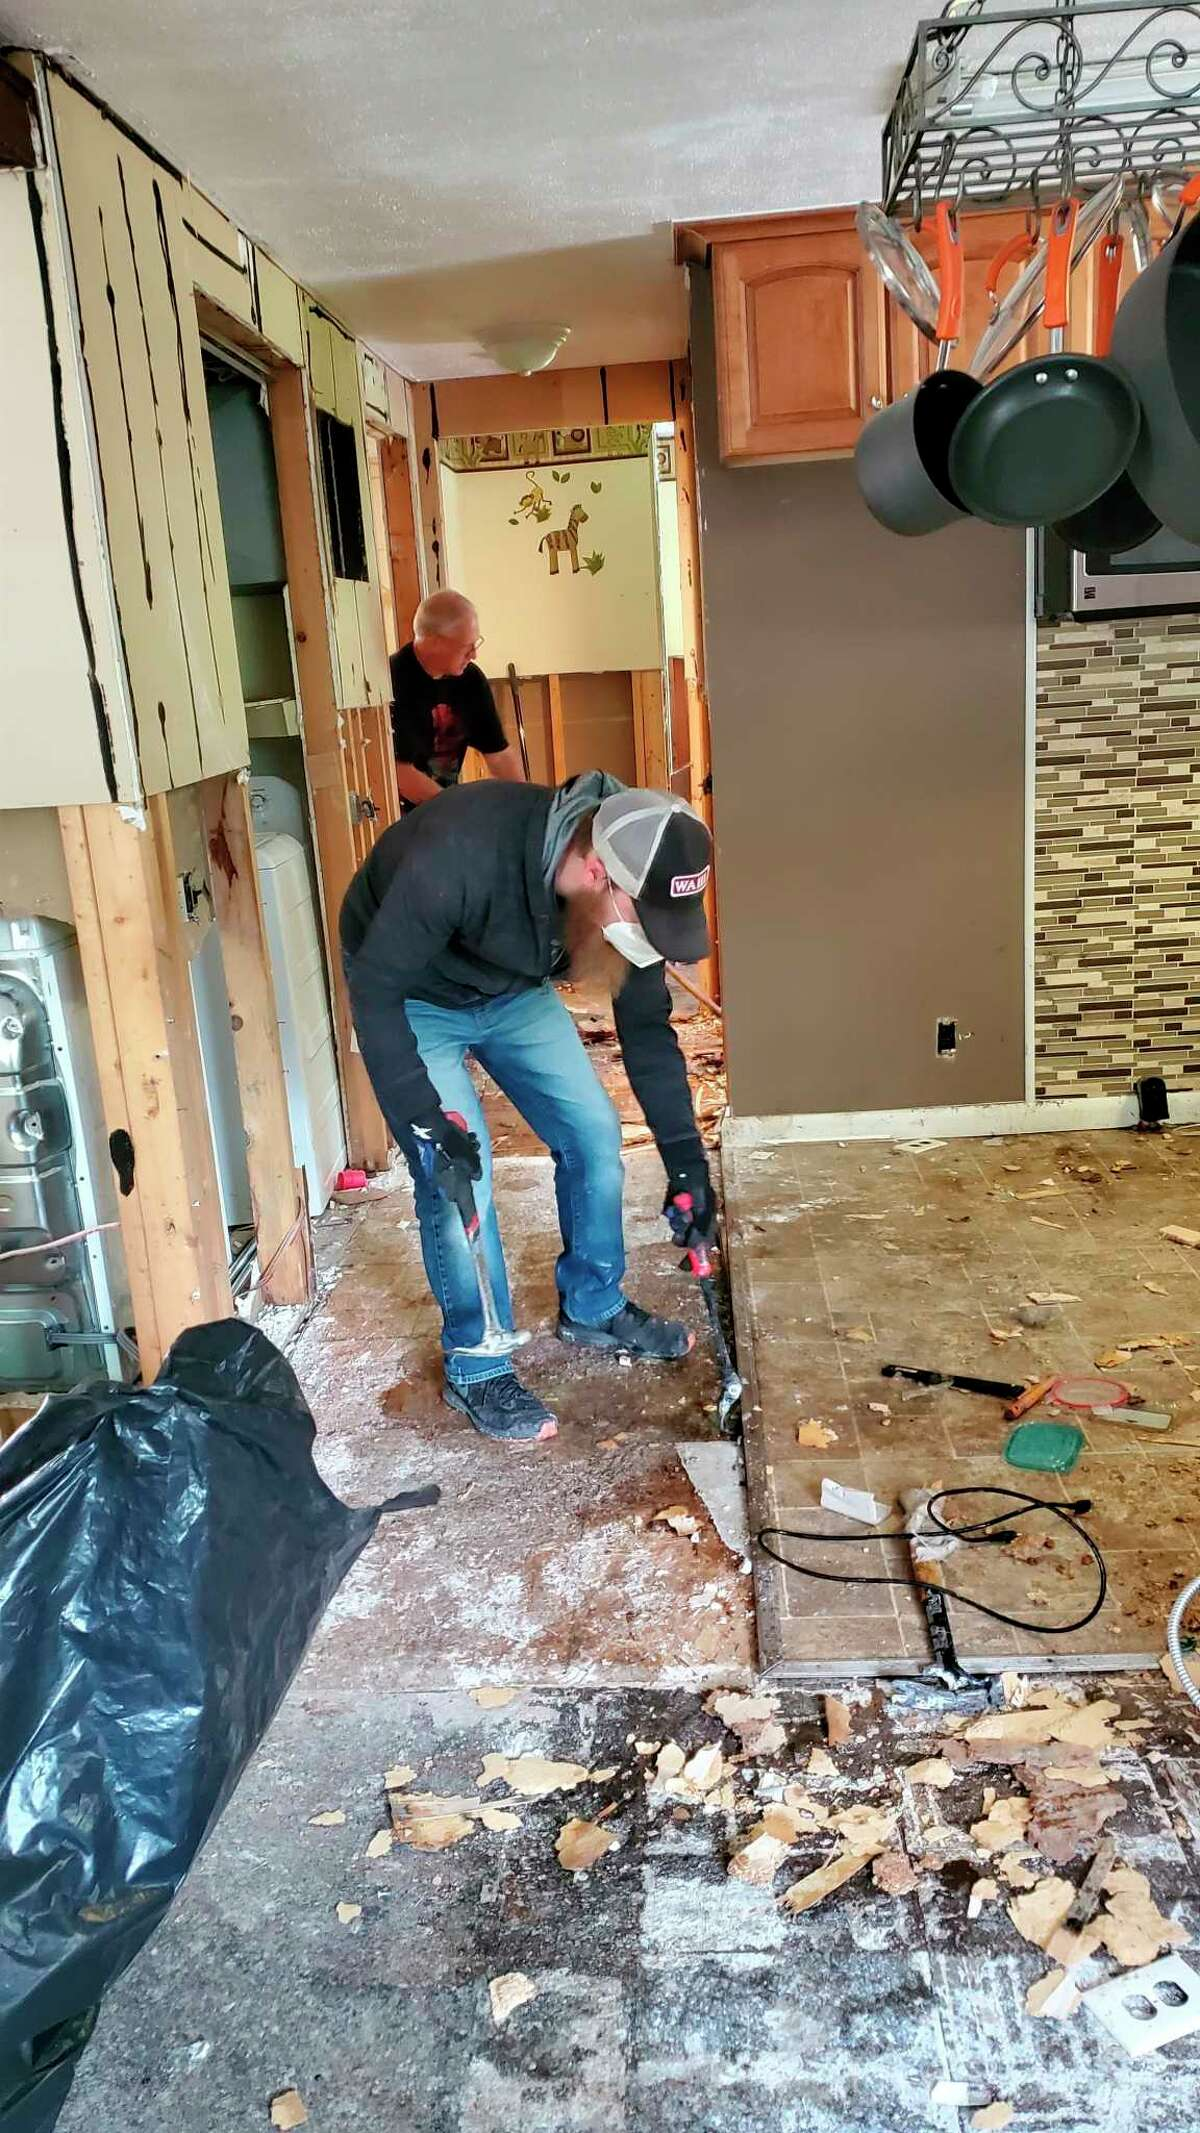 Nick Sklar and his team work with homes damaged by the floods. (Photo Provided)